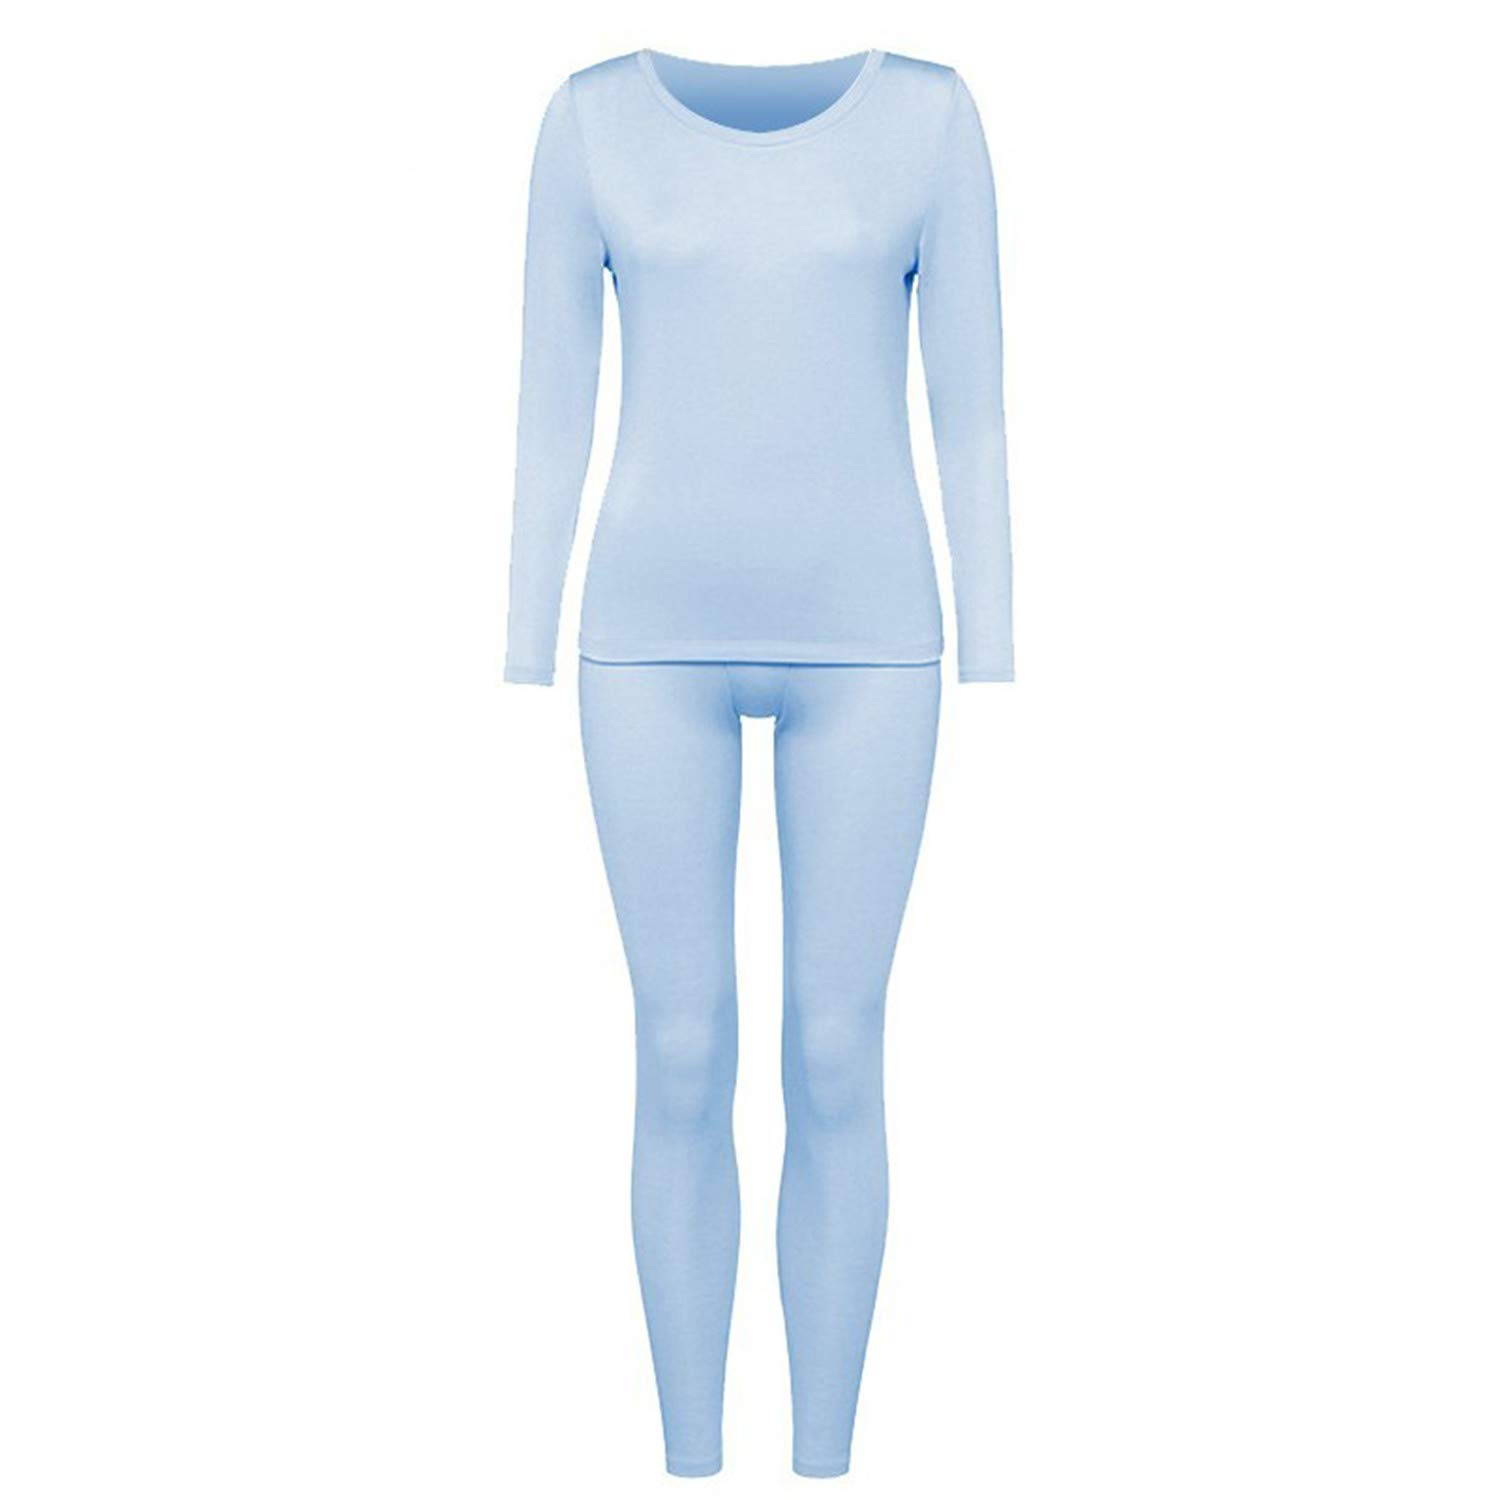 Thermal Underwear Cotton Long Johns Set Womens Winter Thermo ...